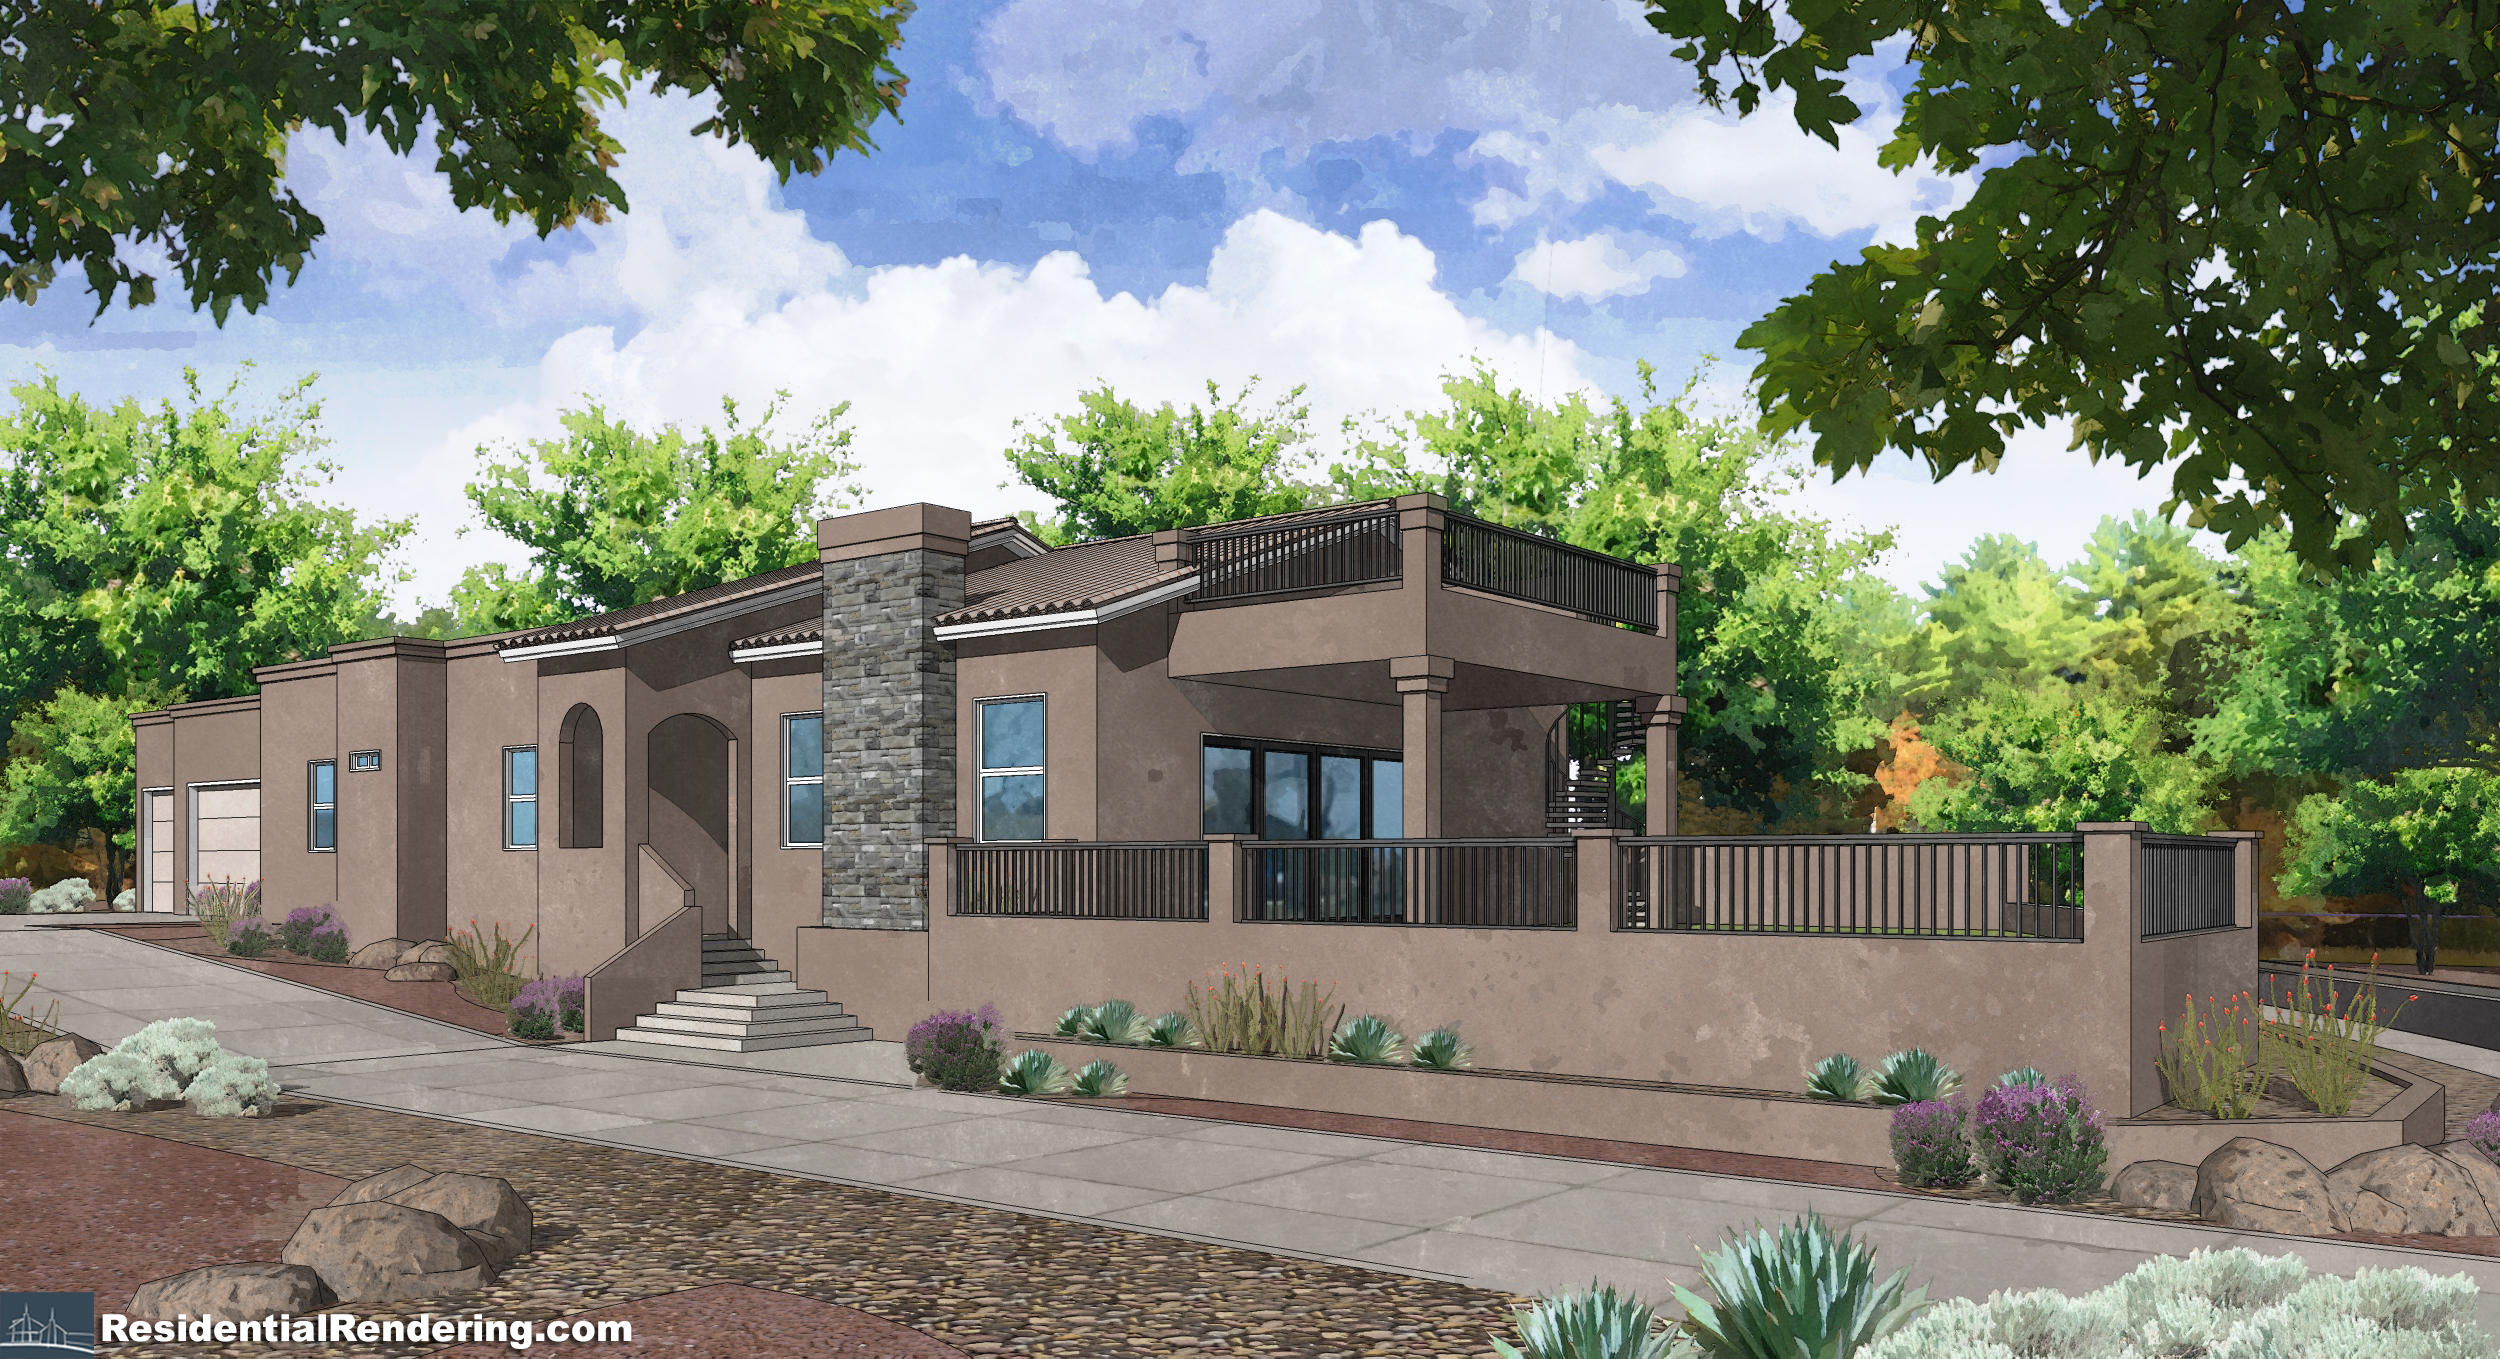 Pics are of model. Colors and selections may vary. Beautiful, upscale home under construction in desirable Mariposa community. Beautiful views with three patios and home oriented to take advantage of the views. 16' sliders opening up to extended, covered patio. Granite countertops throughout, tiled showers, rainhead, walk-in master closets, LED lighting. Samsung SS appliances incl refrig, stove, dw, microwave, and washer and dryer (white).  2-10 Limited 10 yr warranty plus Builders one year warranty. Mariposa community features walking and hiking trails, a very modern community center with indoor and outdoor pools, workout facility, clubroom, and on site management. This home is a showstopper that you won't want to miss.